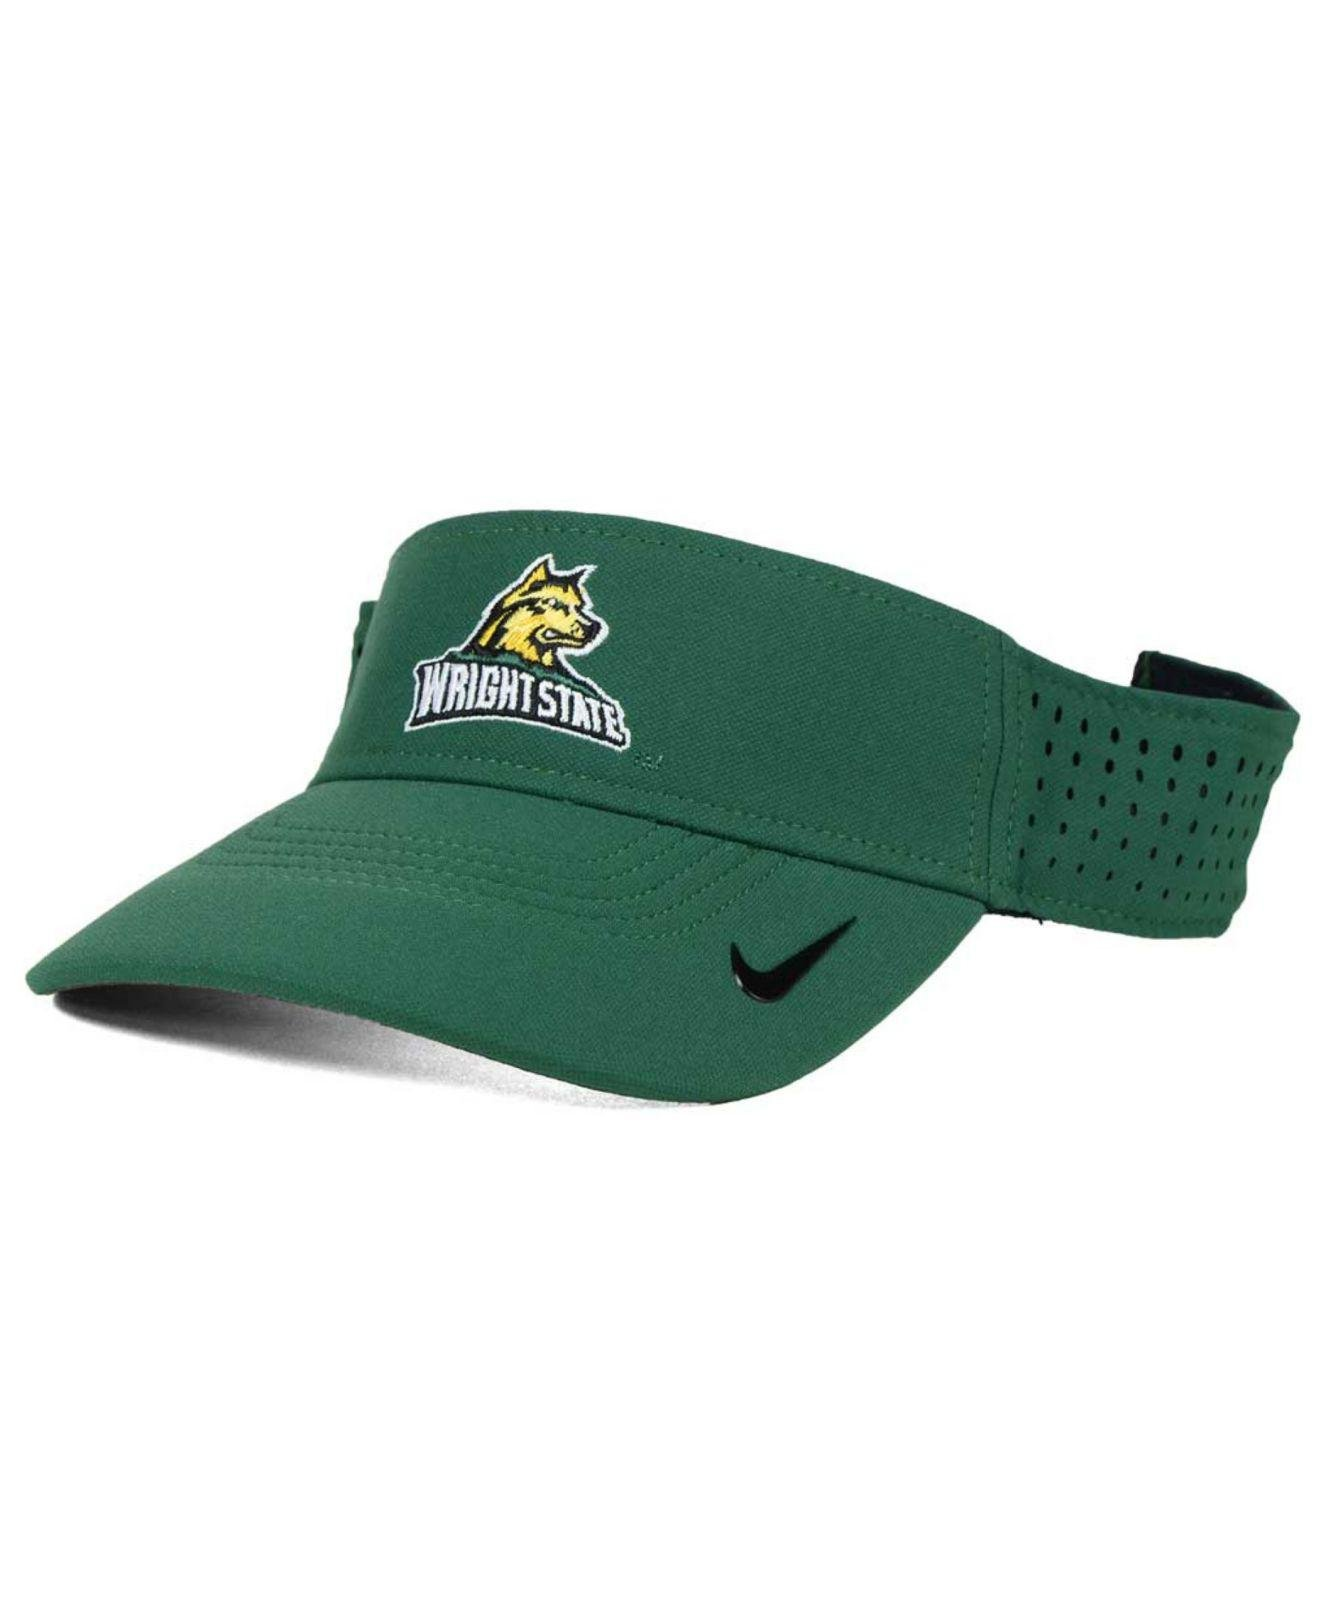 5782d59f4 Lyst - Nike Wright State Raiders Vapor Visor in Green for Men